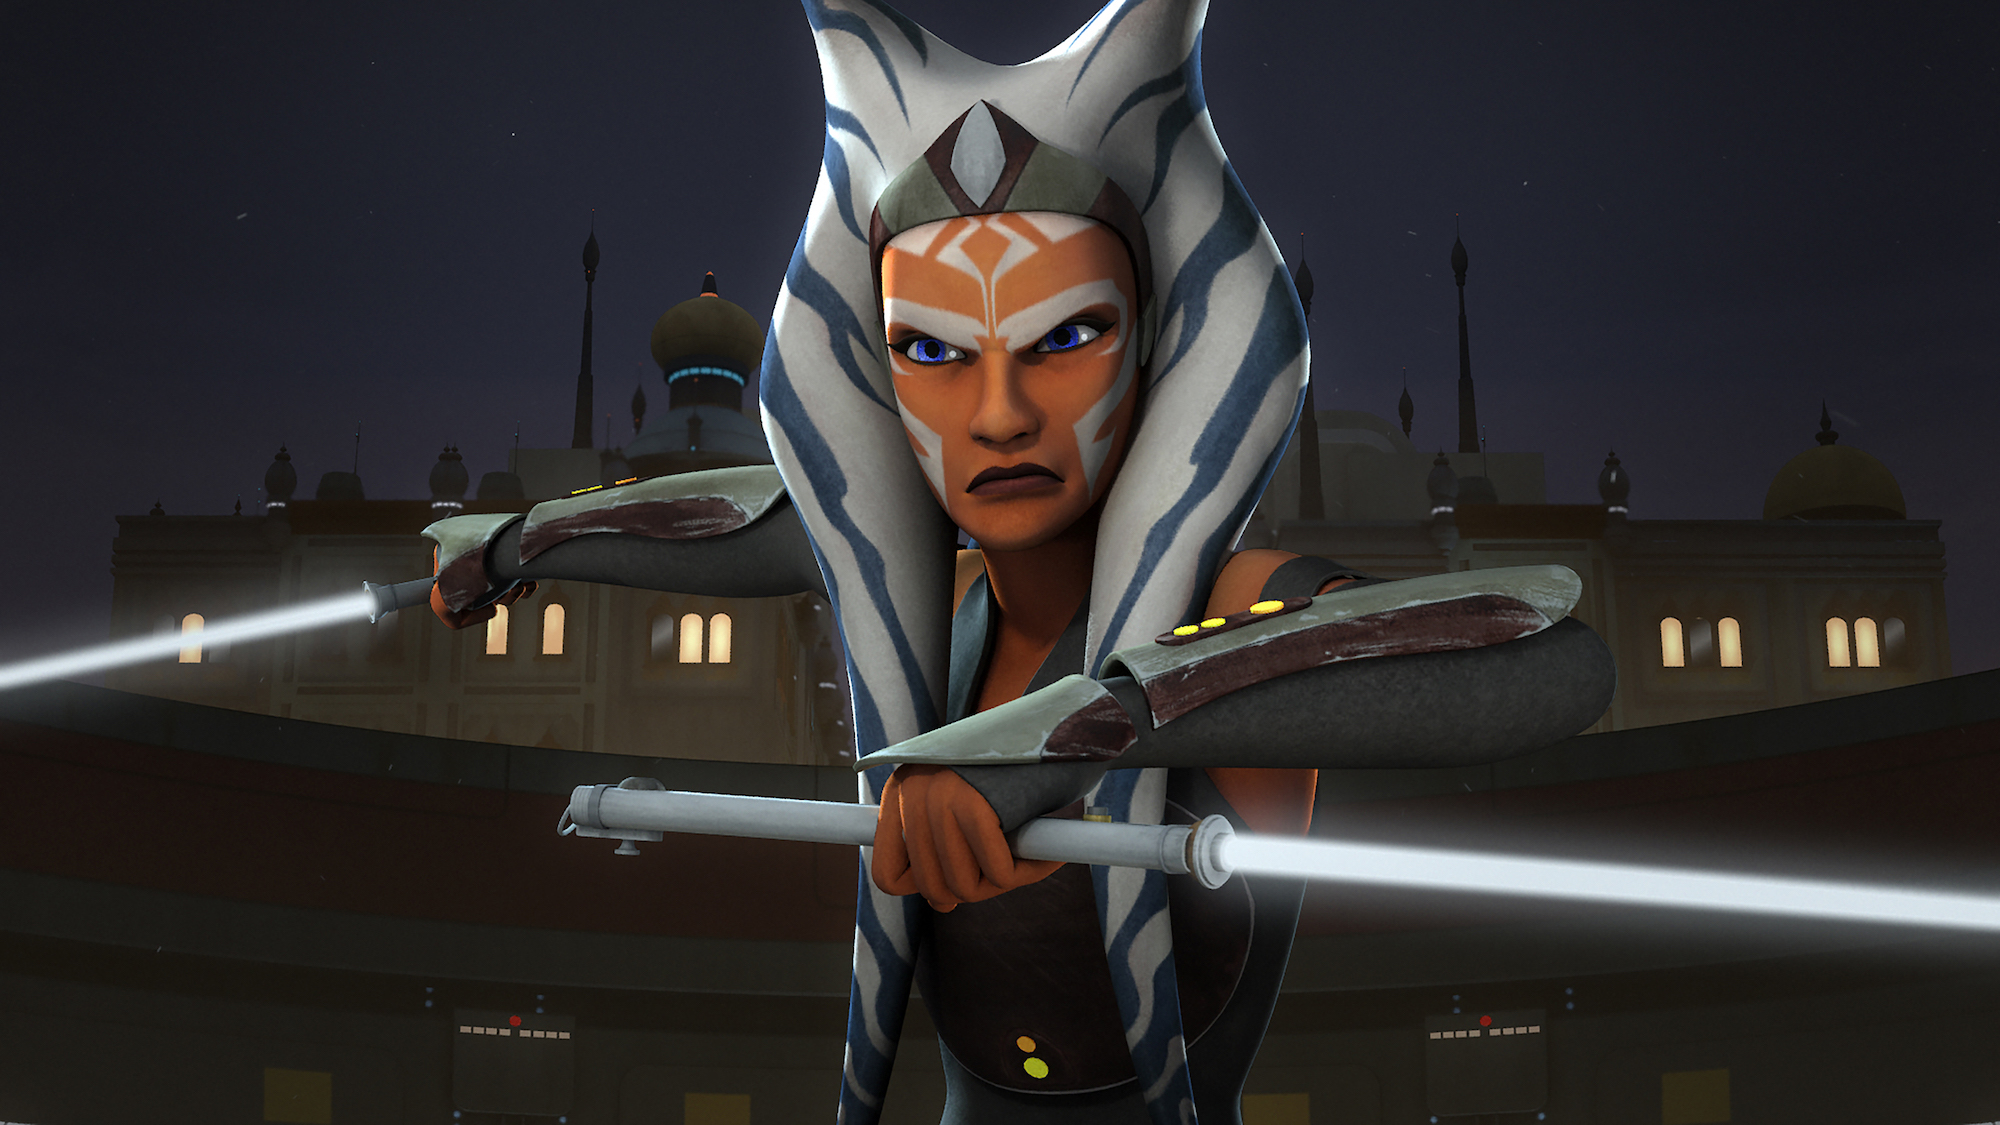 Ahsoka Tano with her white lightsabers in 'STAR WARS REBELS'